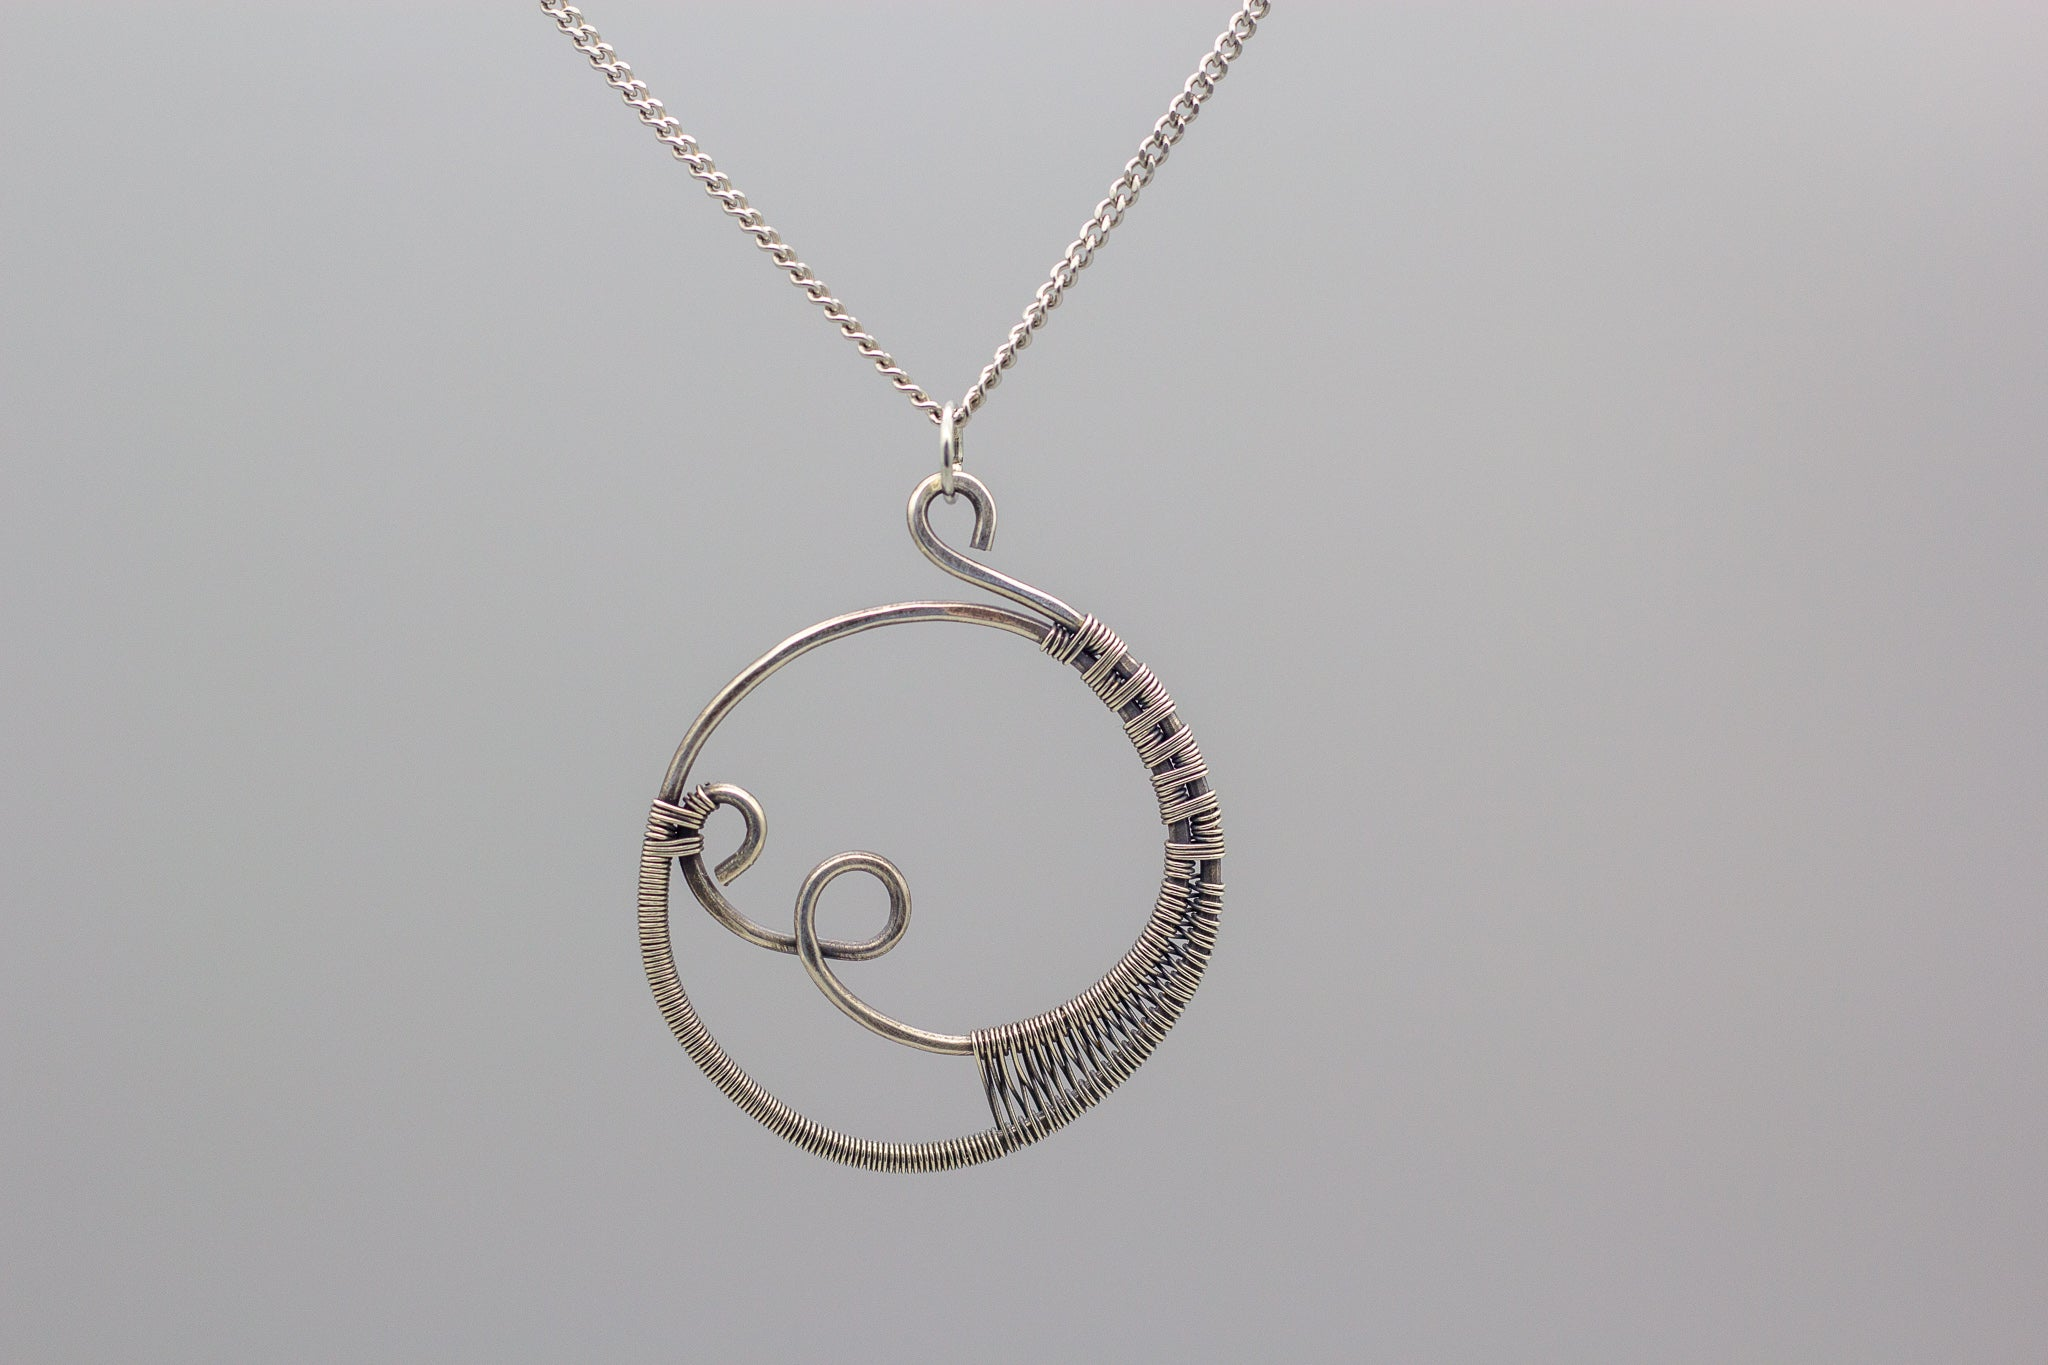 handmade circular pendant with sterling silver wire wrapping